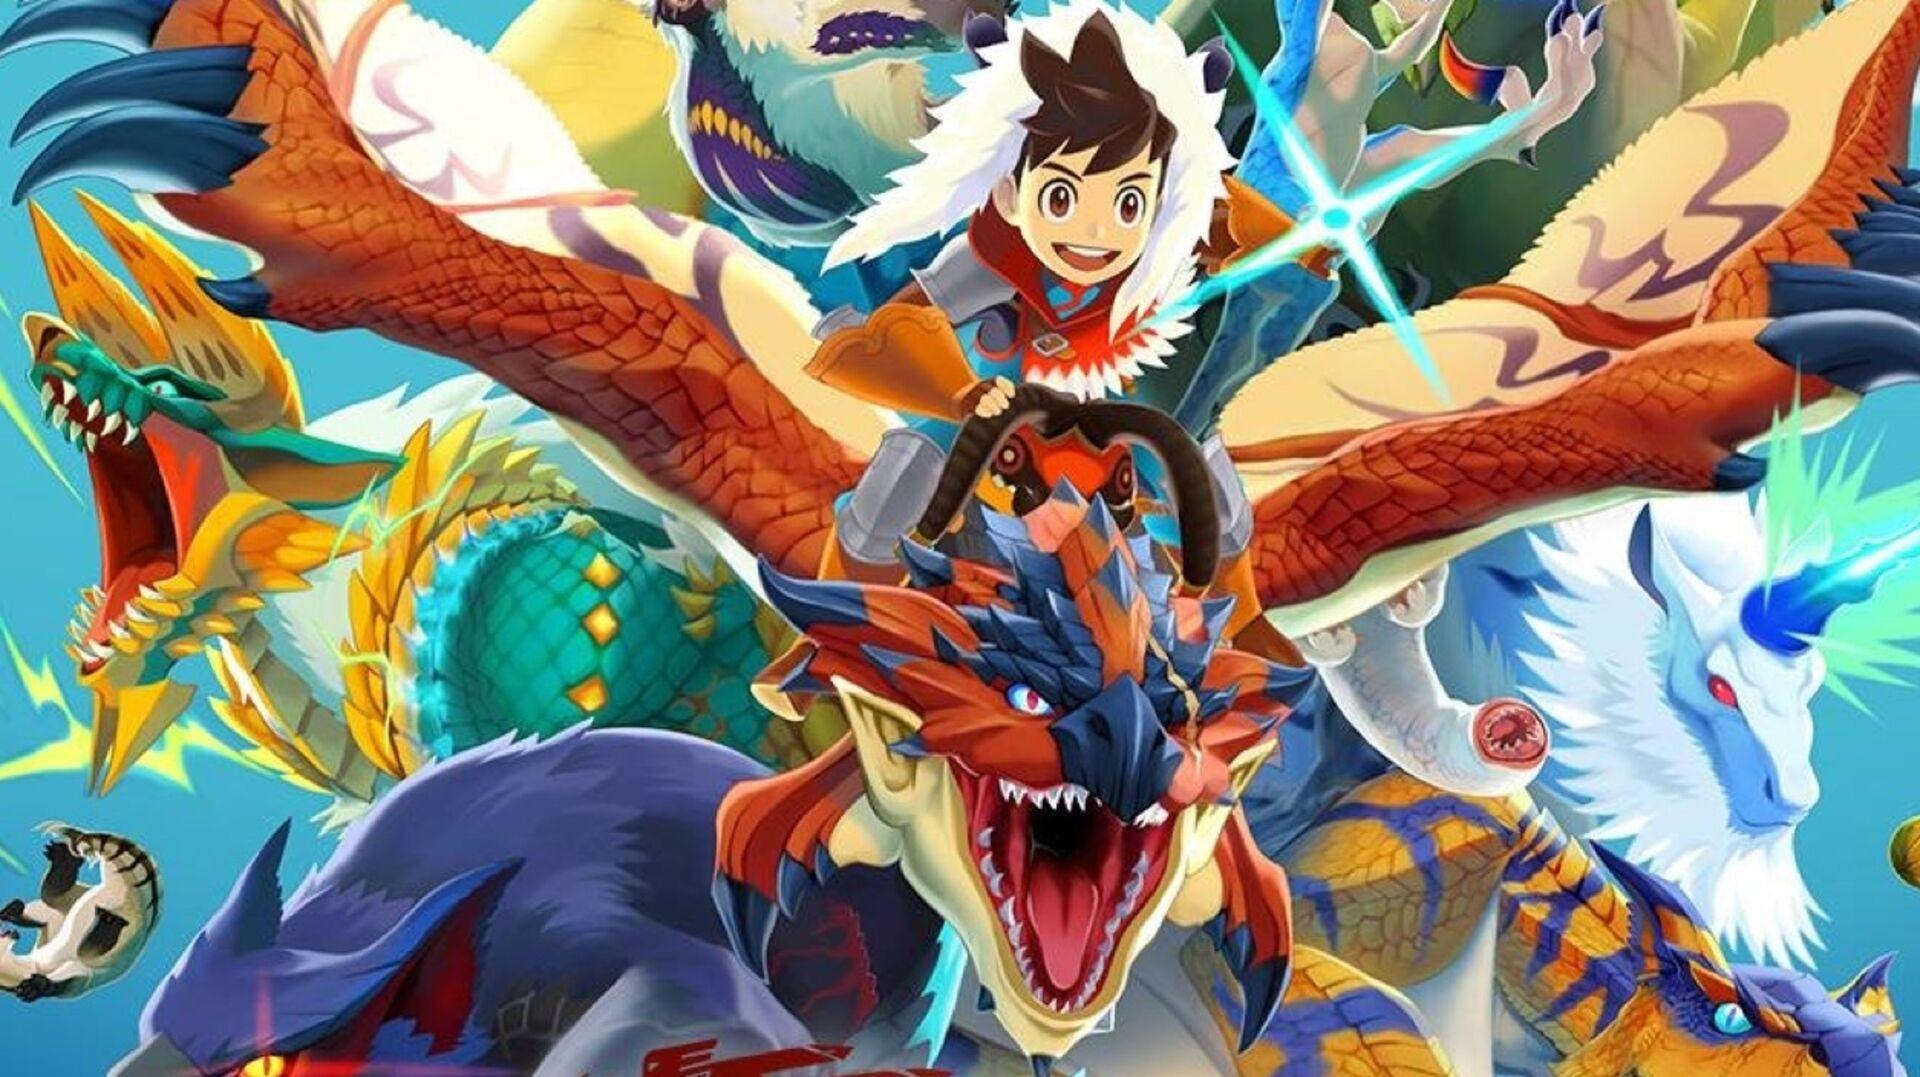 Delightful Rpg Spin Off Monster Hunter Stories Is Now Available On